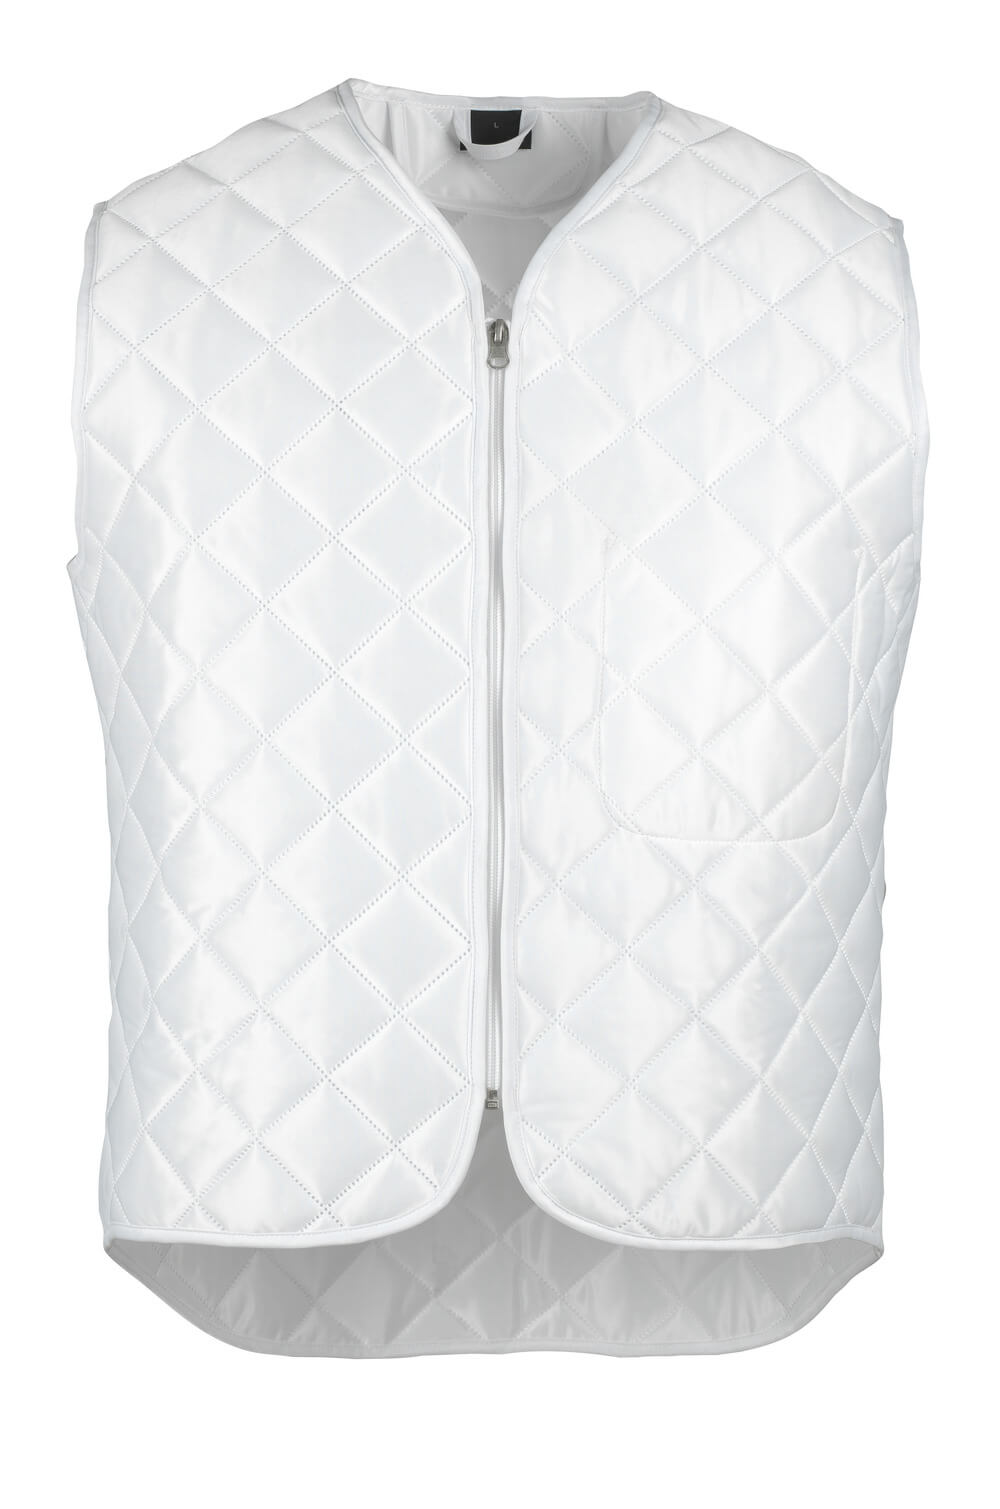 13548-707-06 Thermobodywarmer - wit